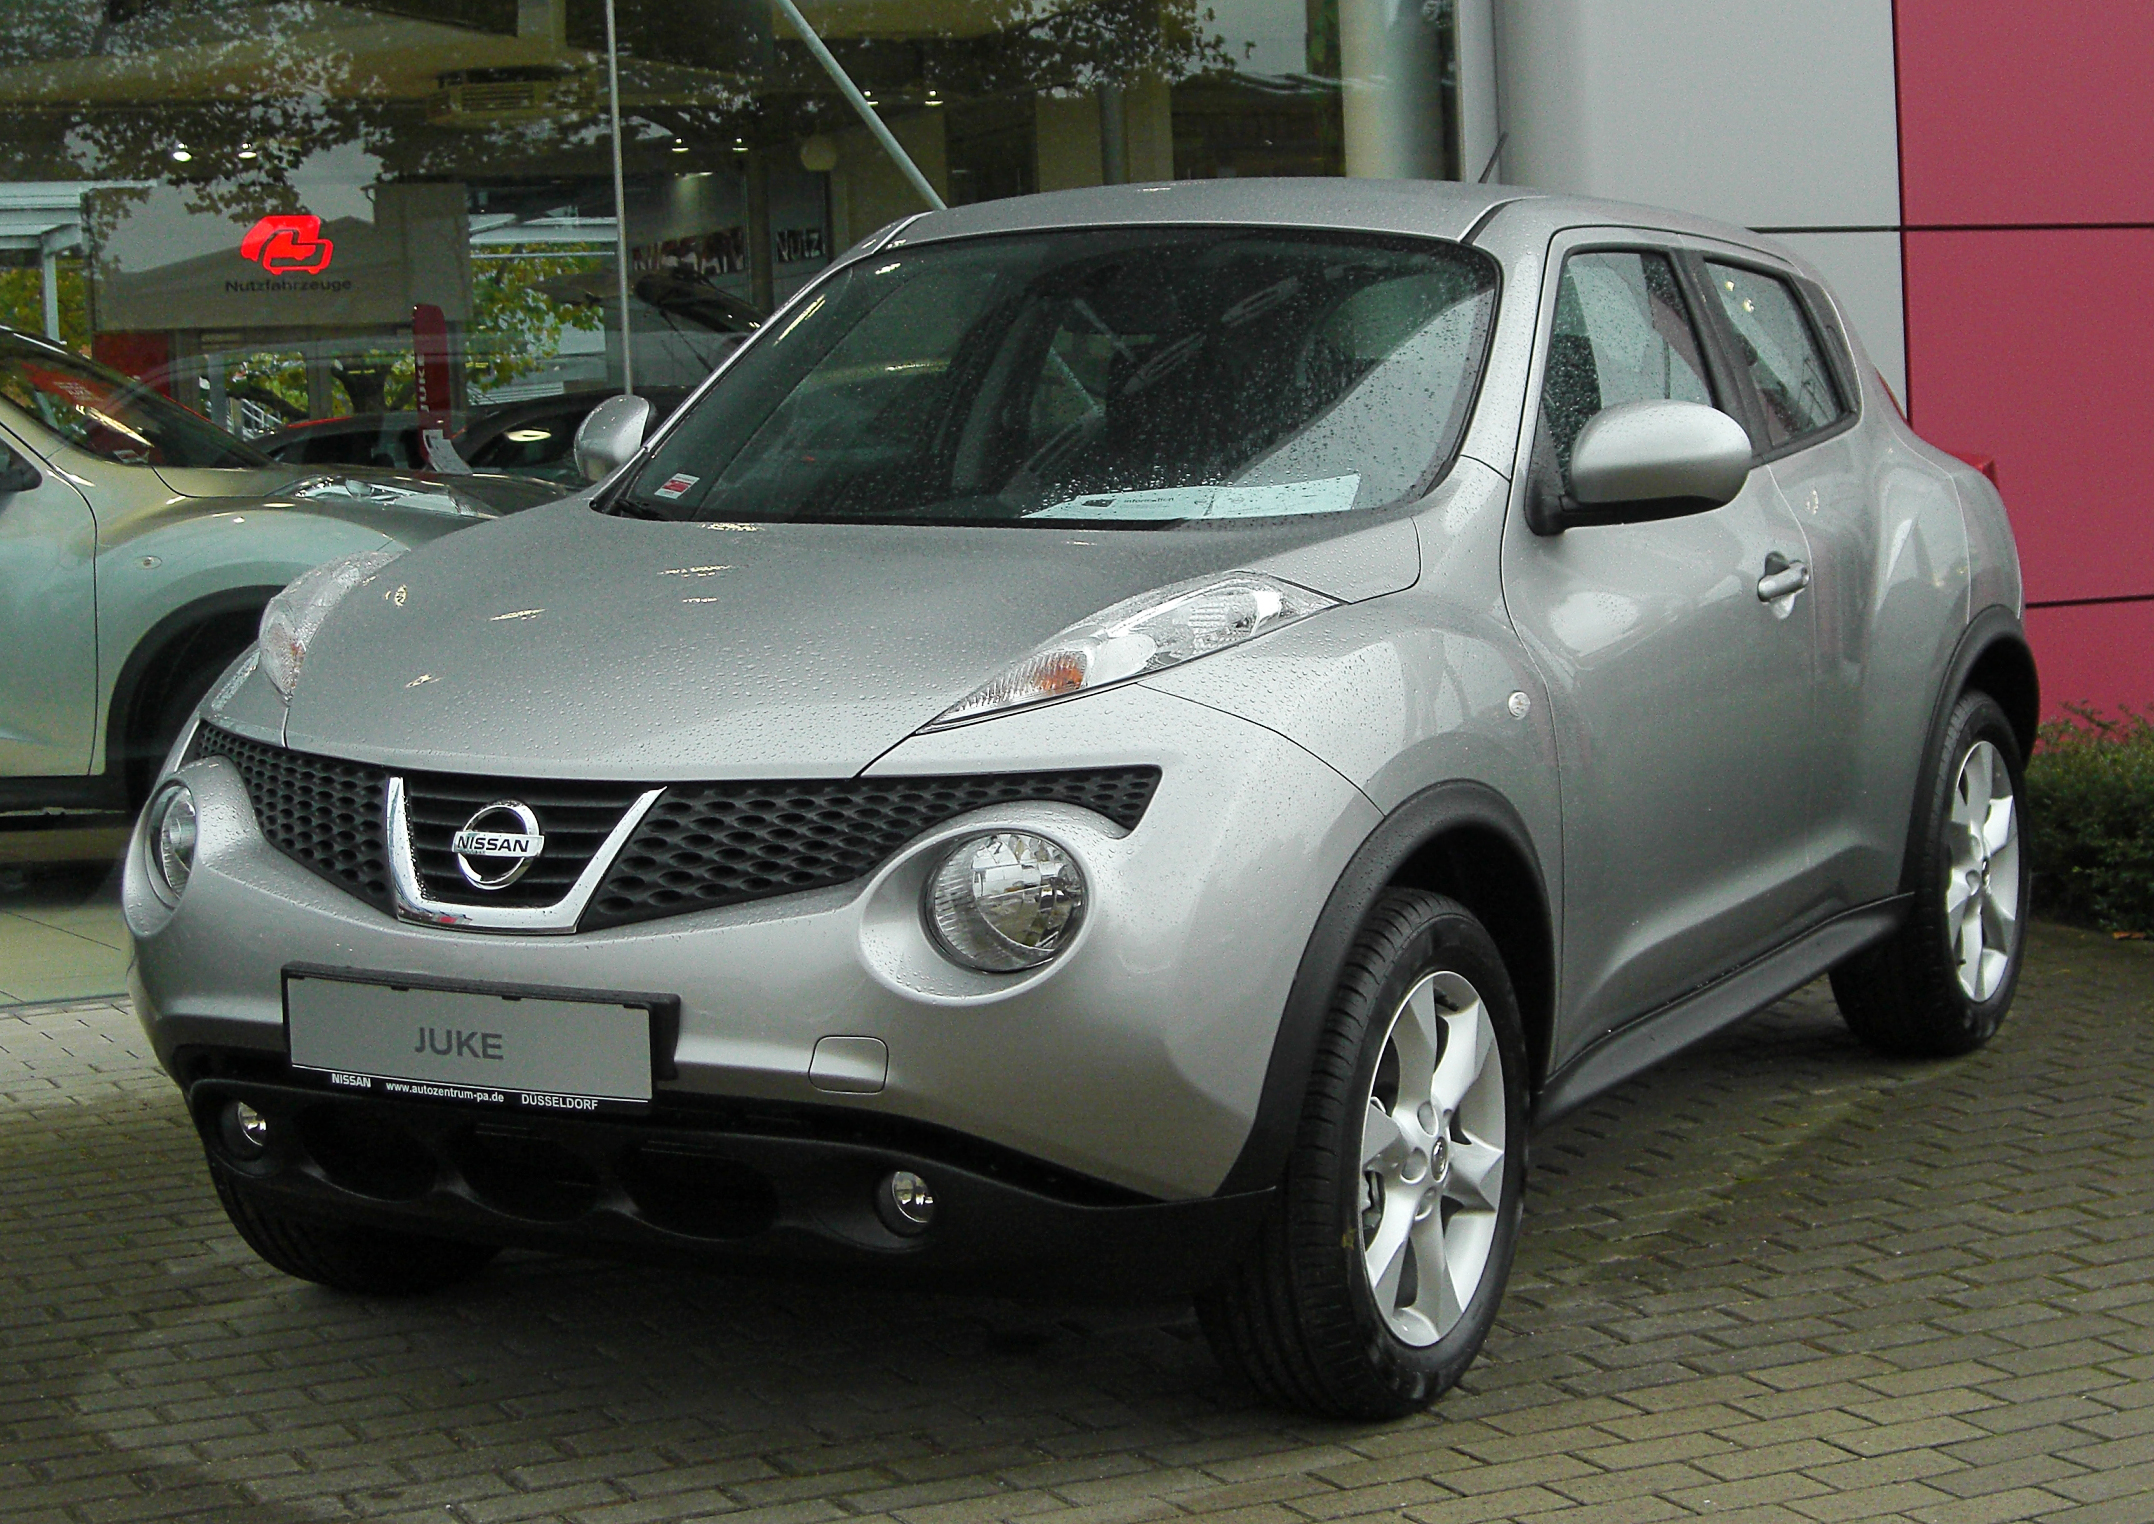 file nissan juke acenta 1 6 2x4 front wikipedia. Black Bedroom Furniture Sets. Home Design Ideas